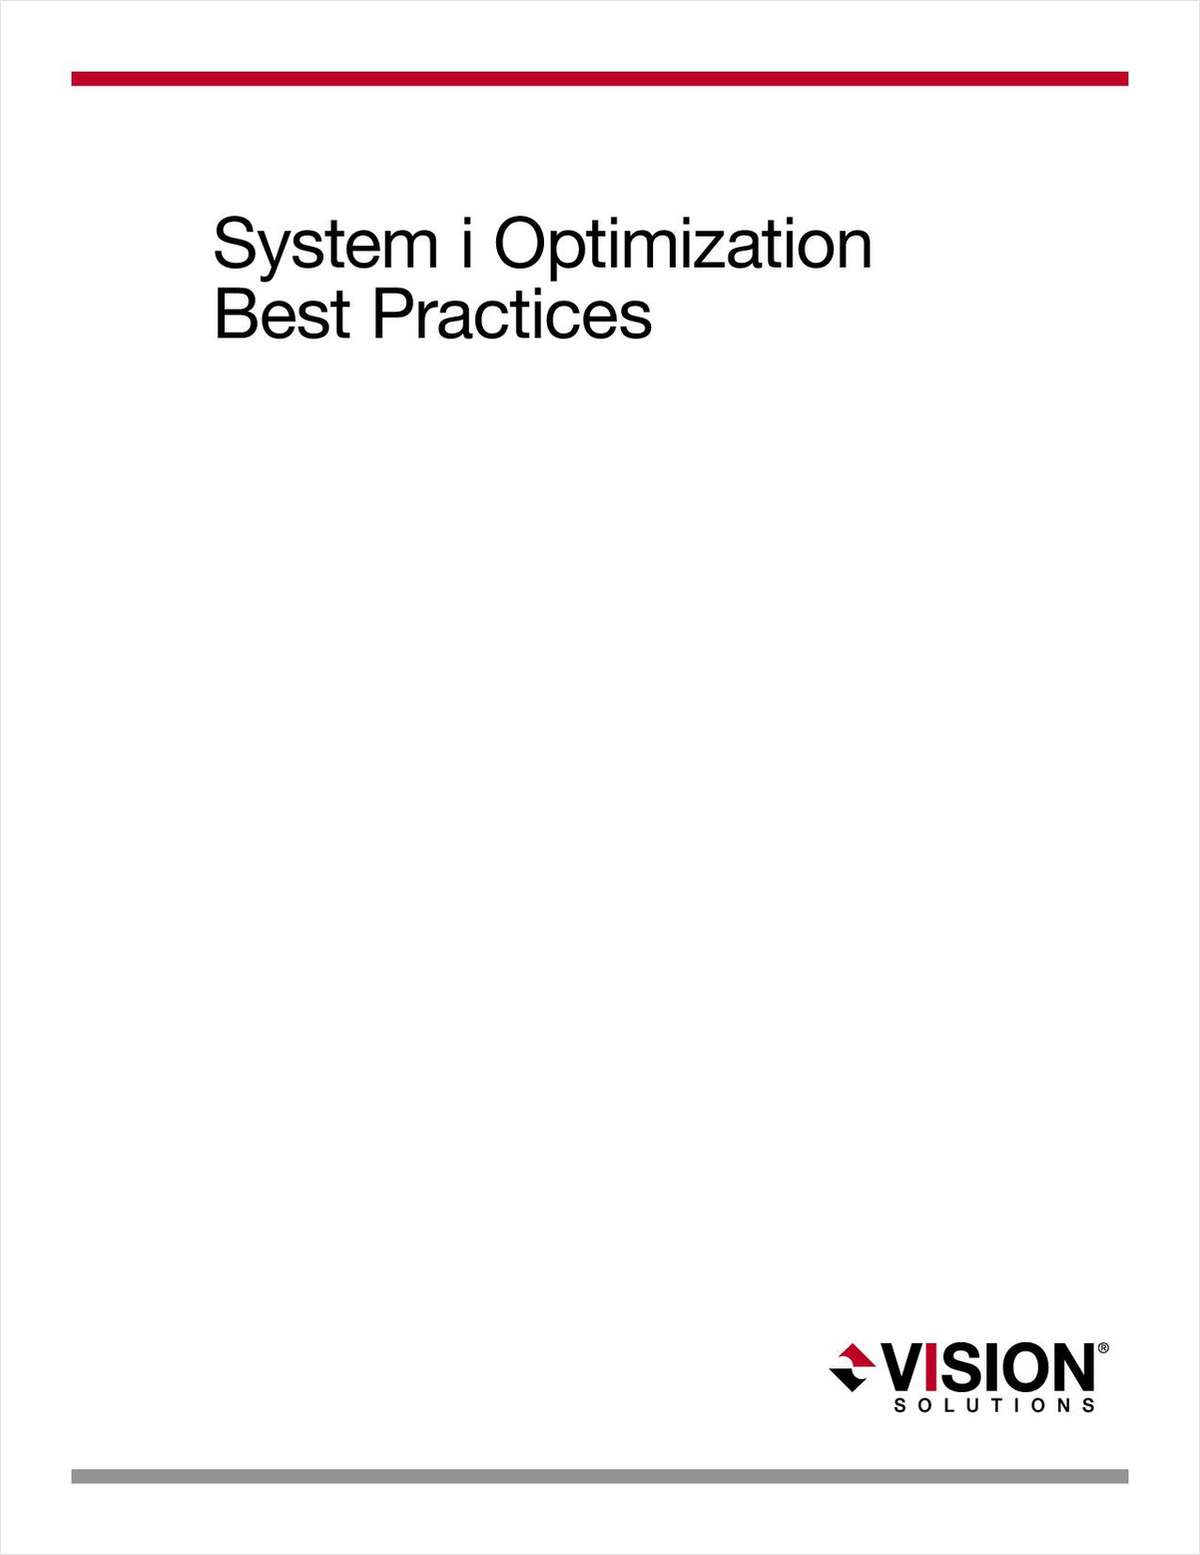 System i (AS/400) Optimization Best Practices